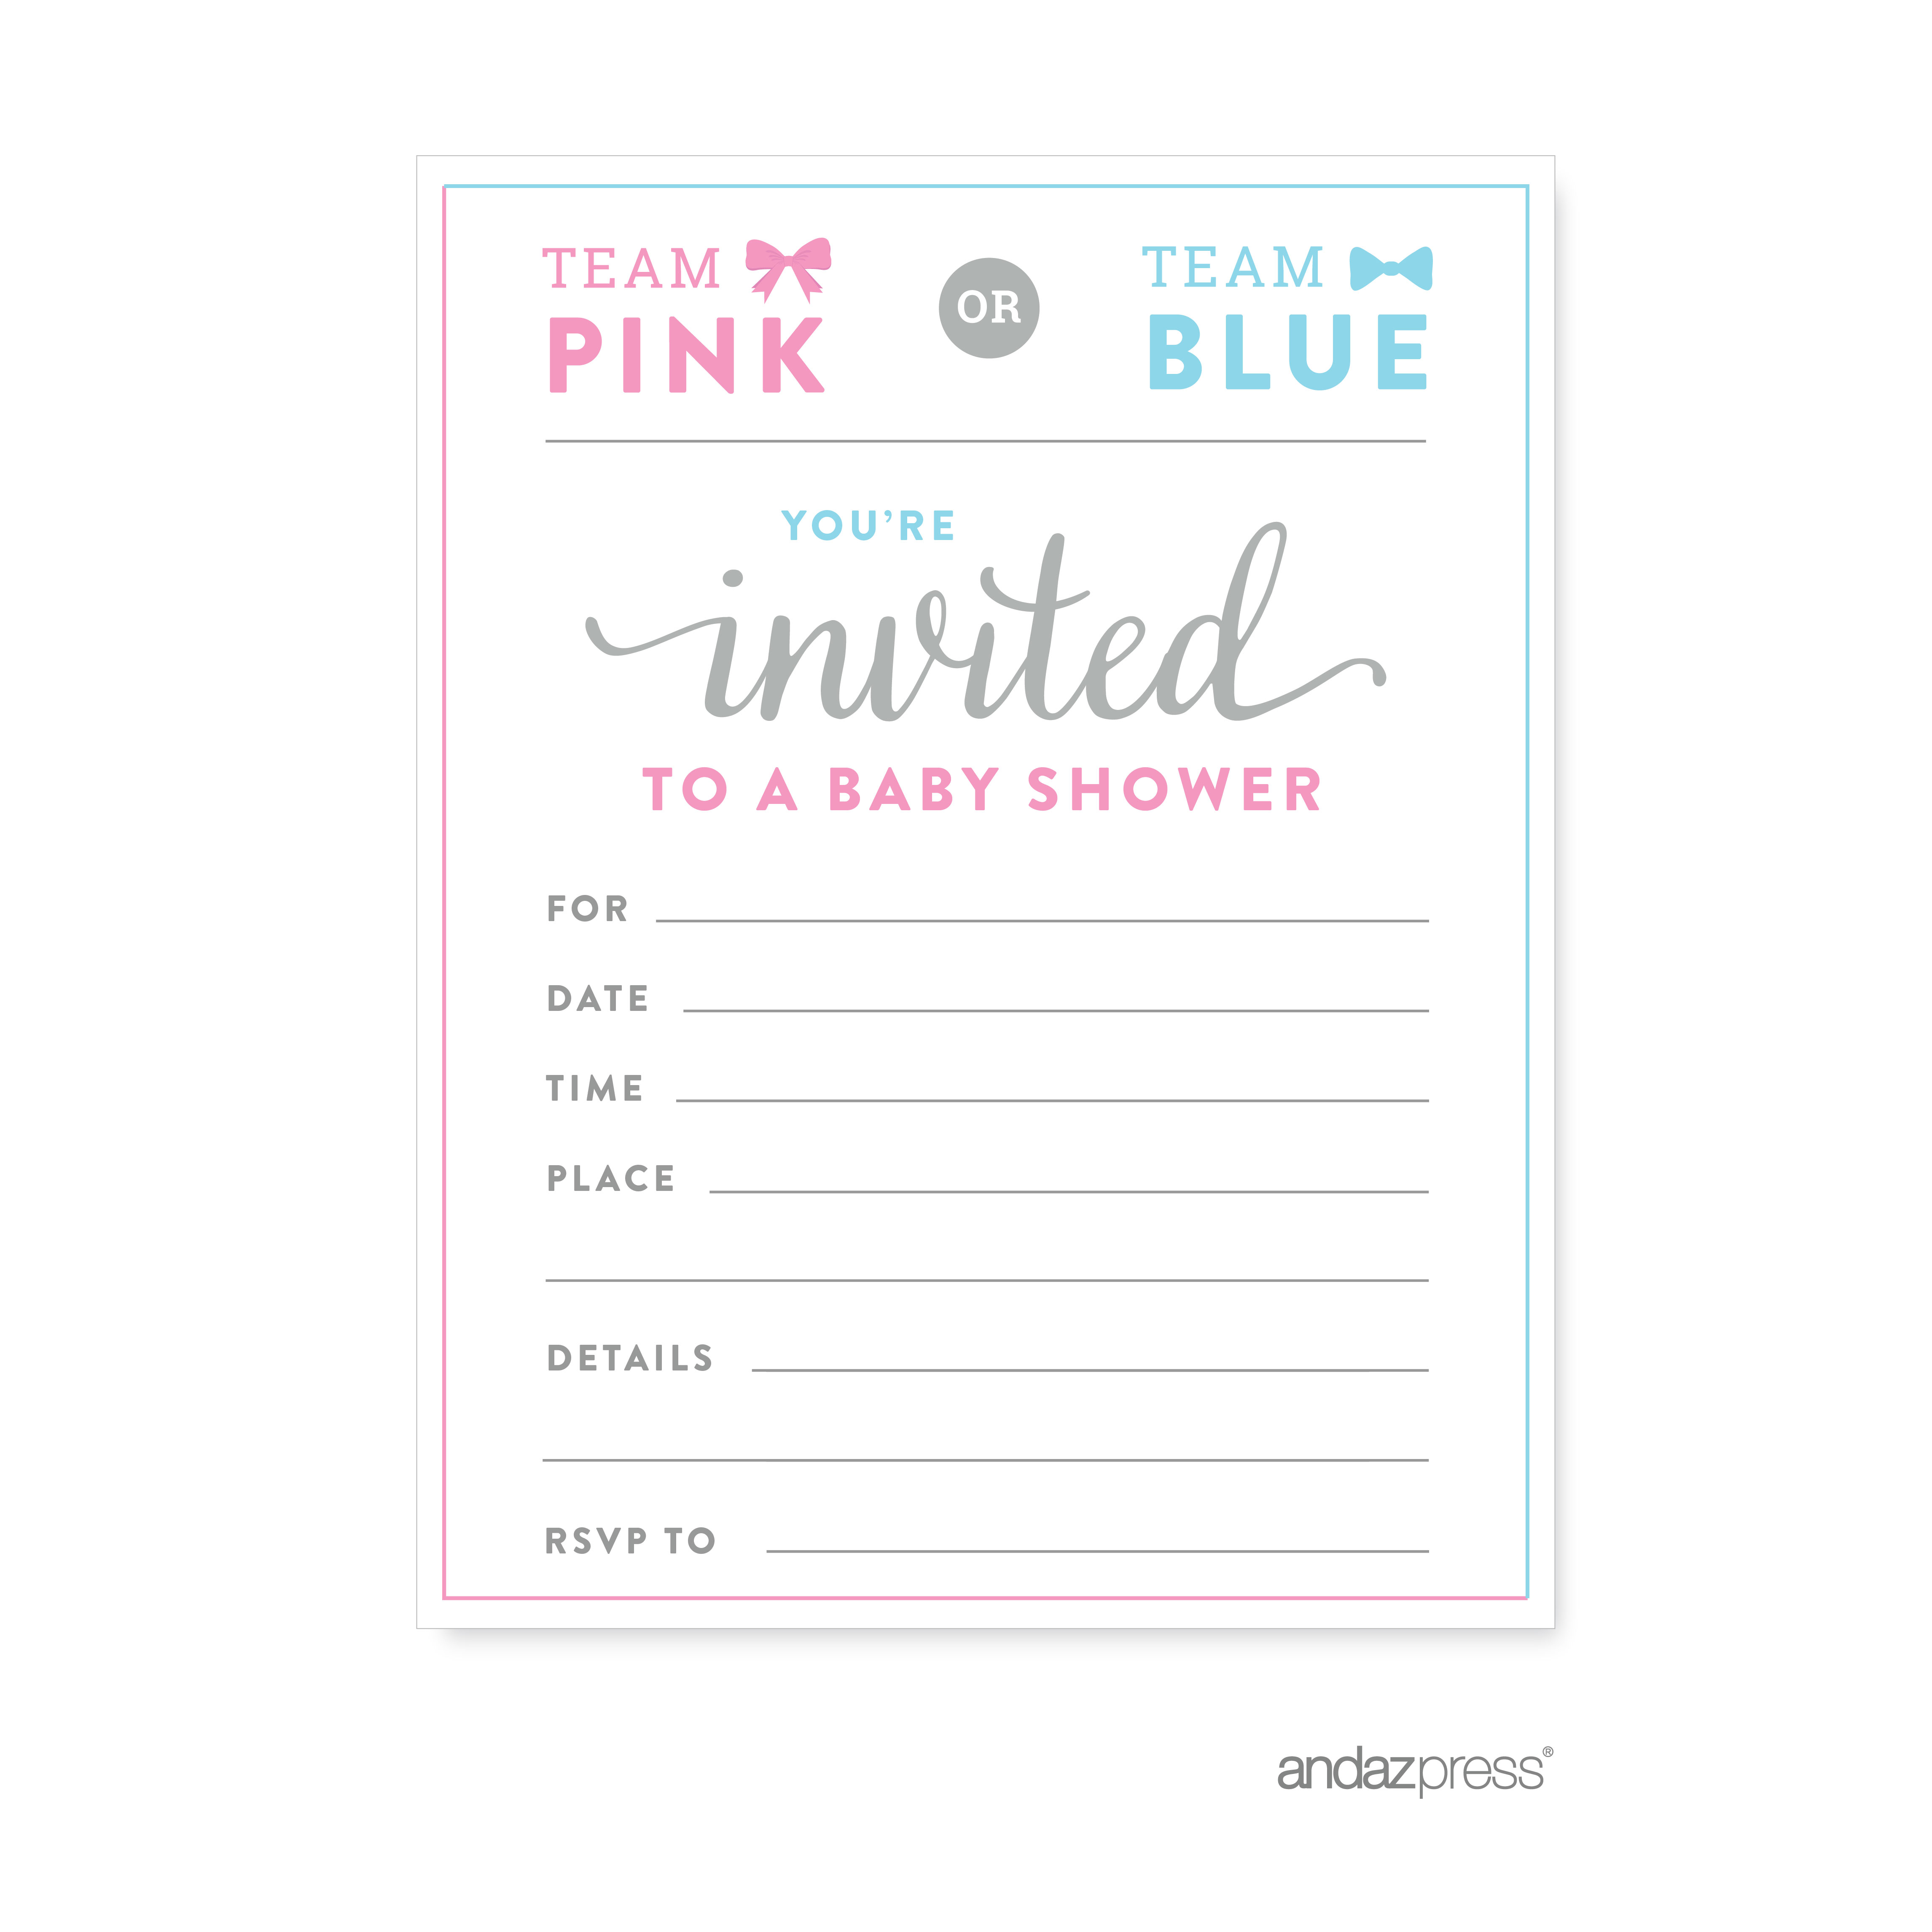 Invitations  Team Pink/Blue Gender Reveal Baby Shower Party Blank Invitations, 20-Pack